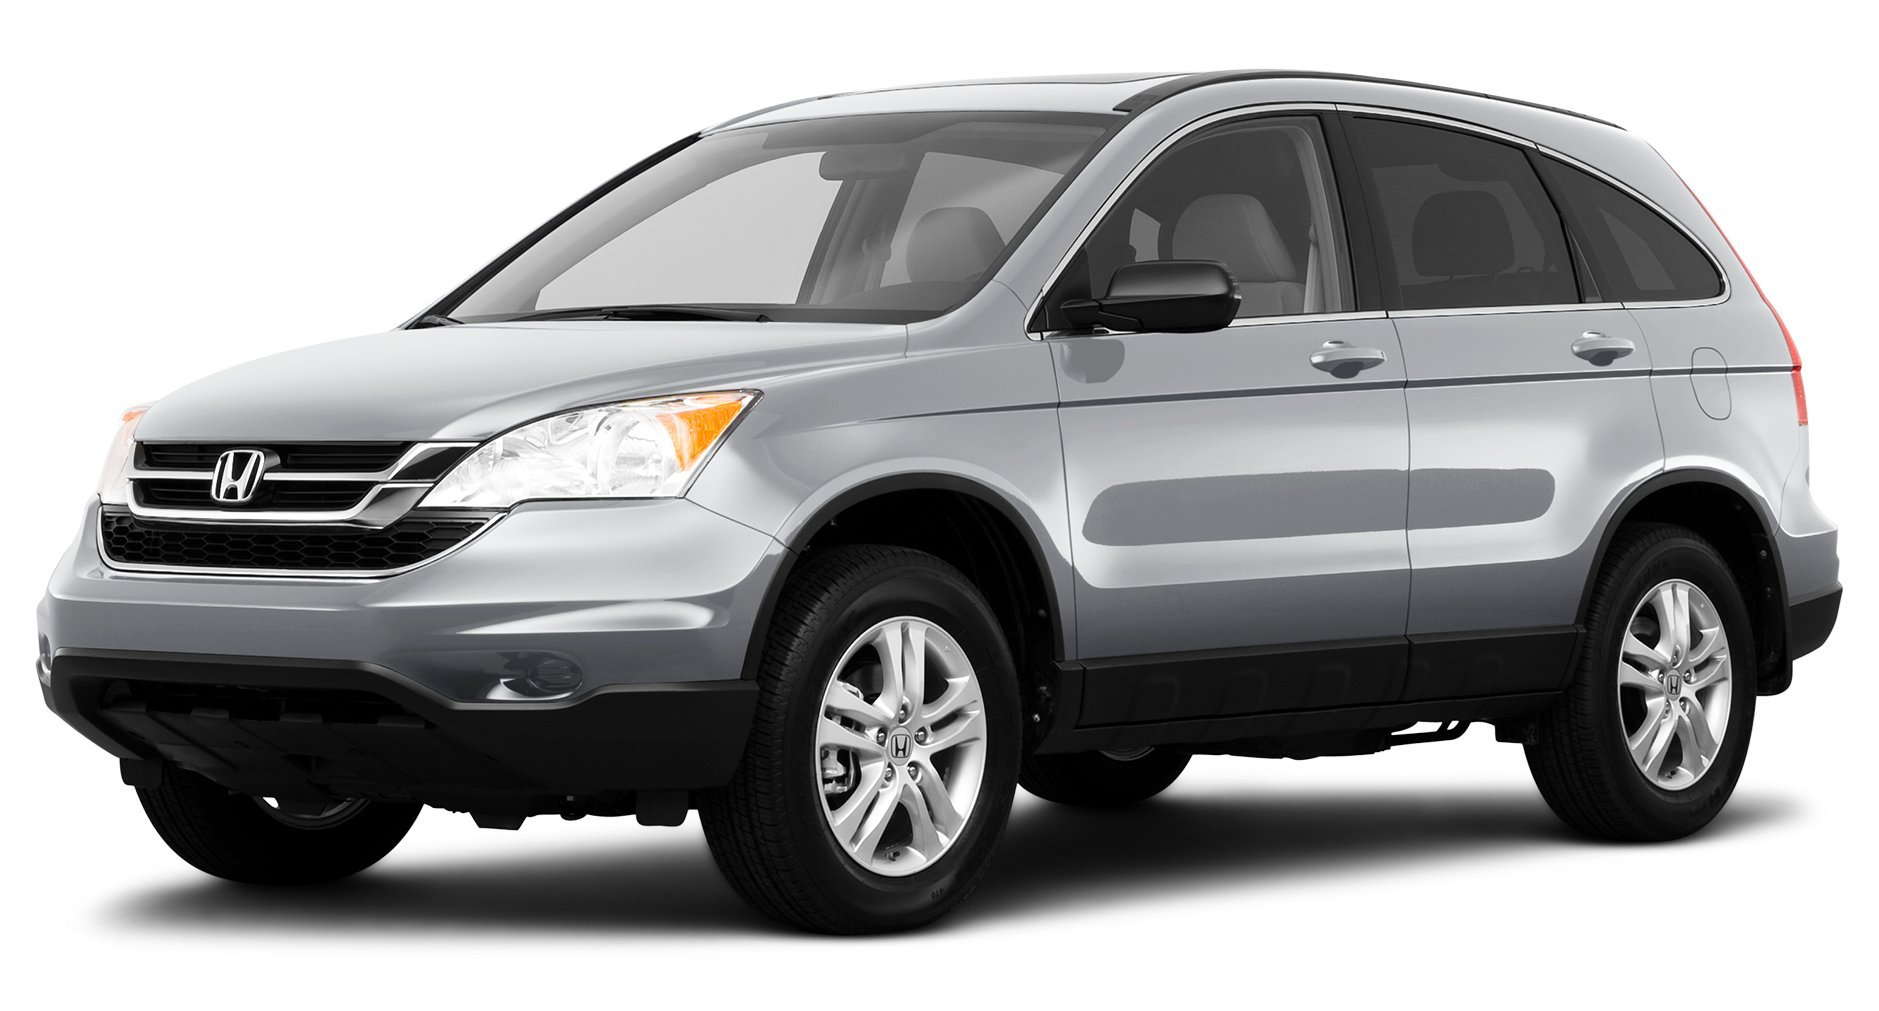 2010 honda cr v reviews images and specs for Is a honda crv a suv